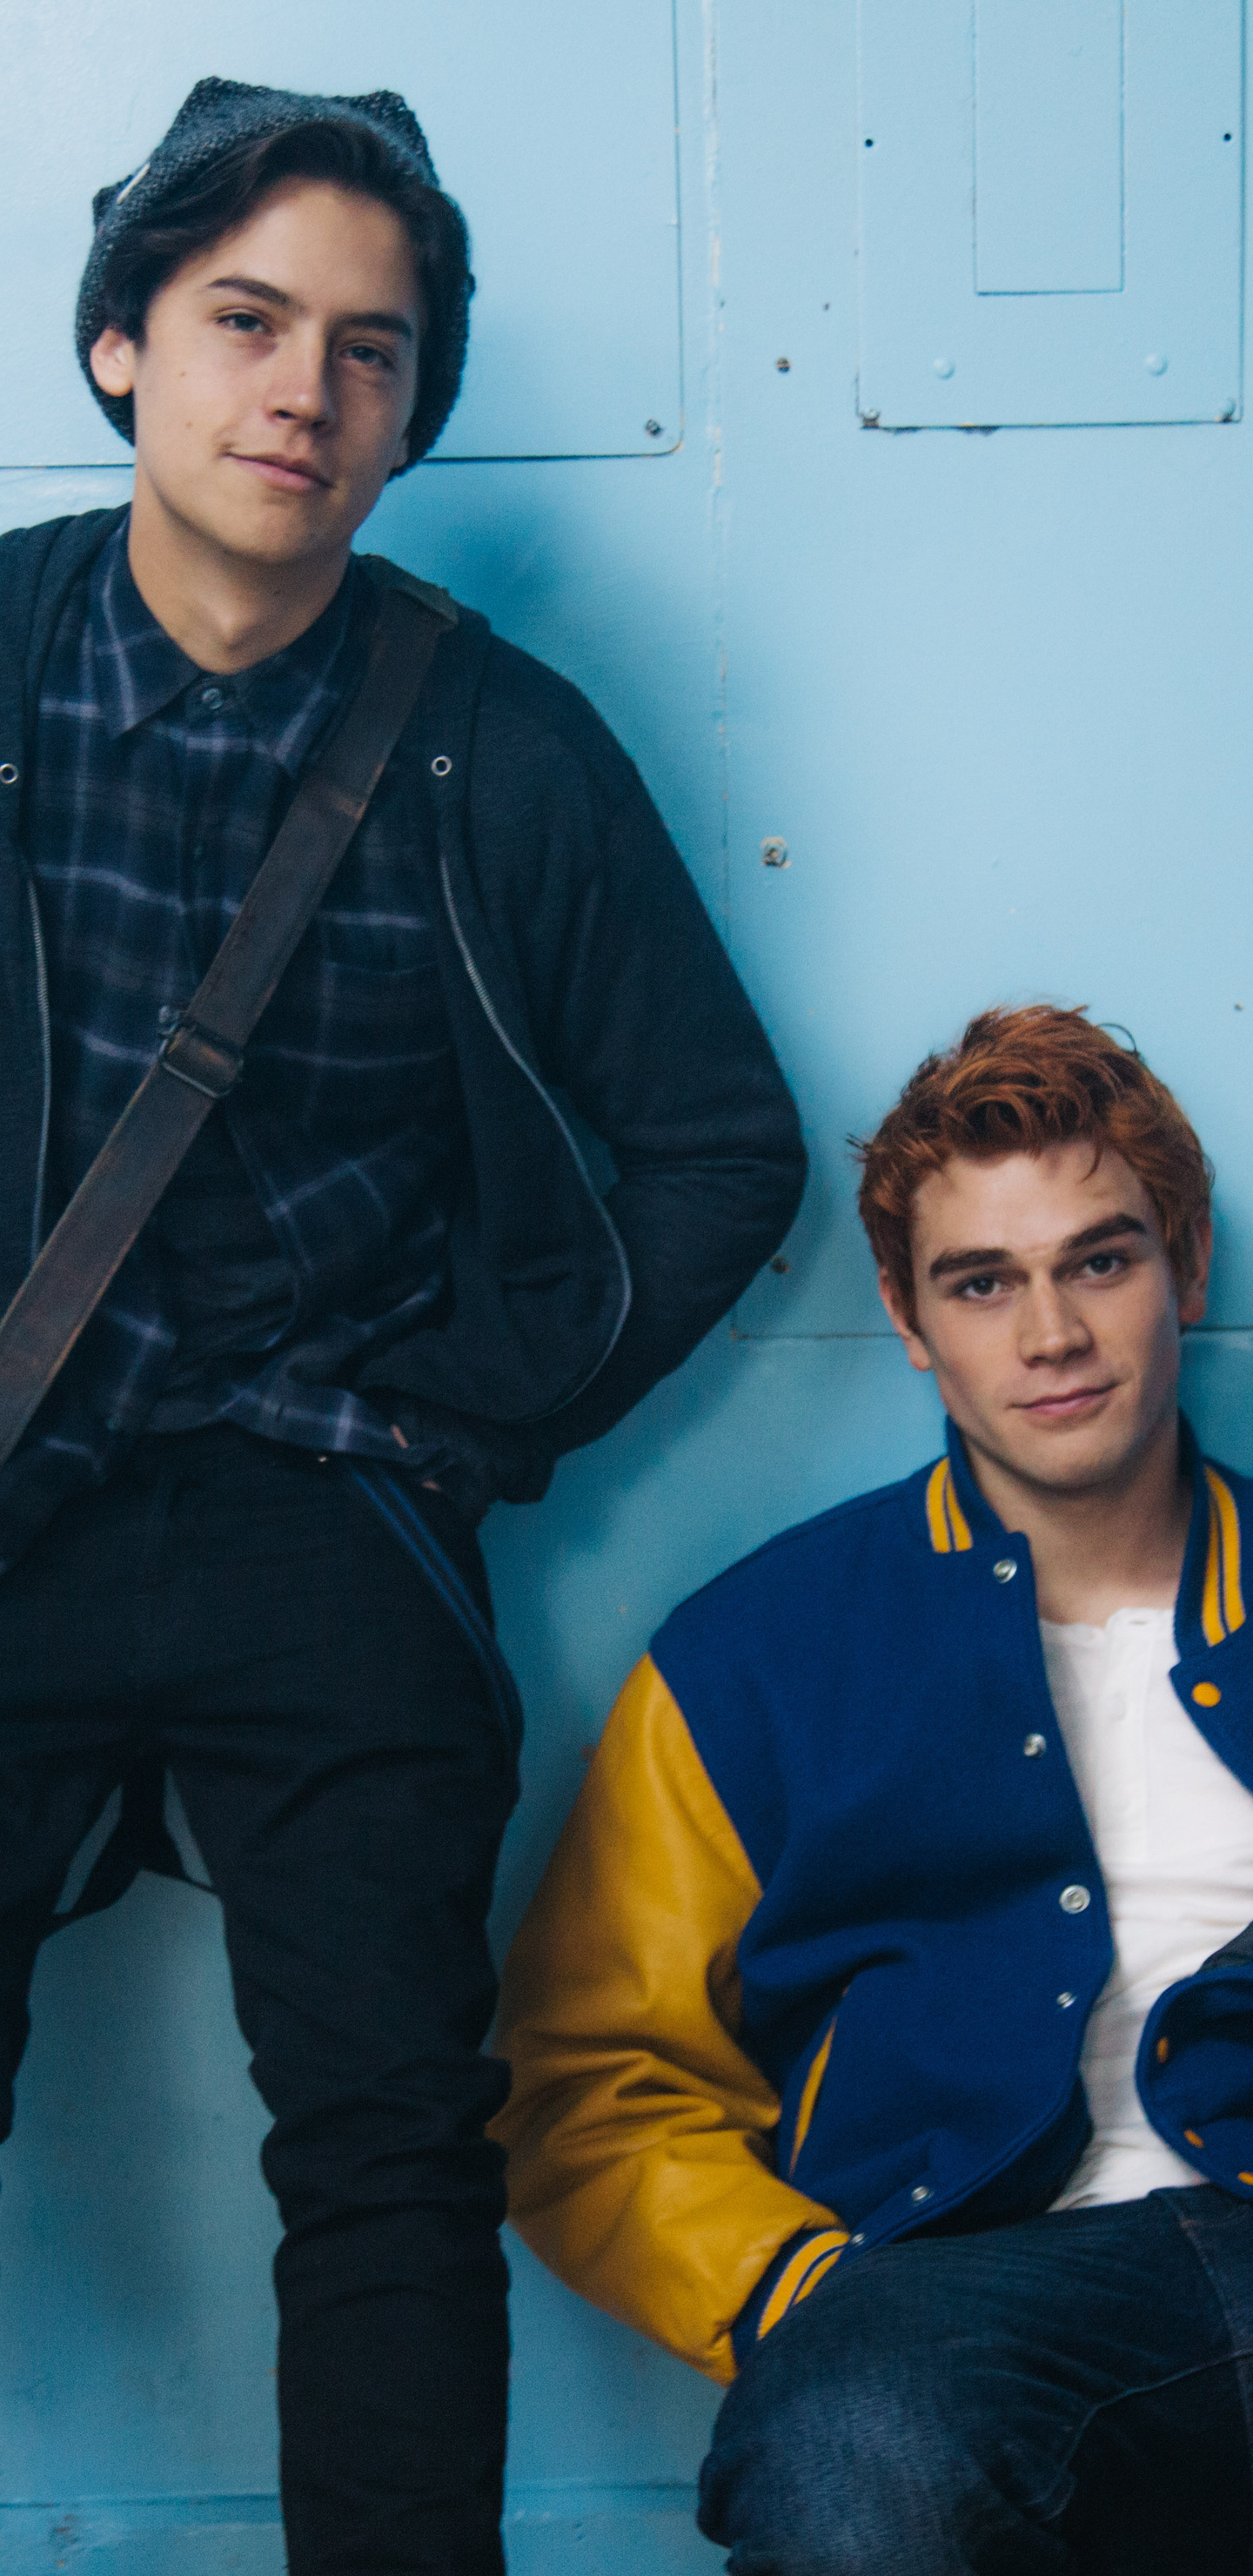 1440x2960 Archie Andrews Kj Apa And Jughead Cole Sprouse Samsung